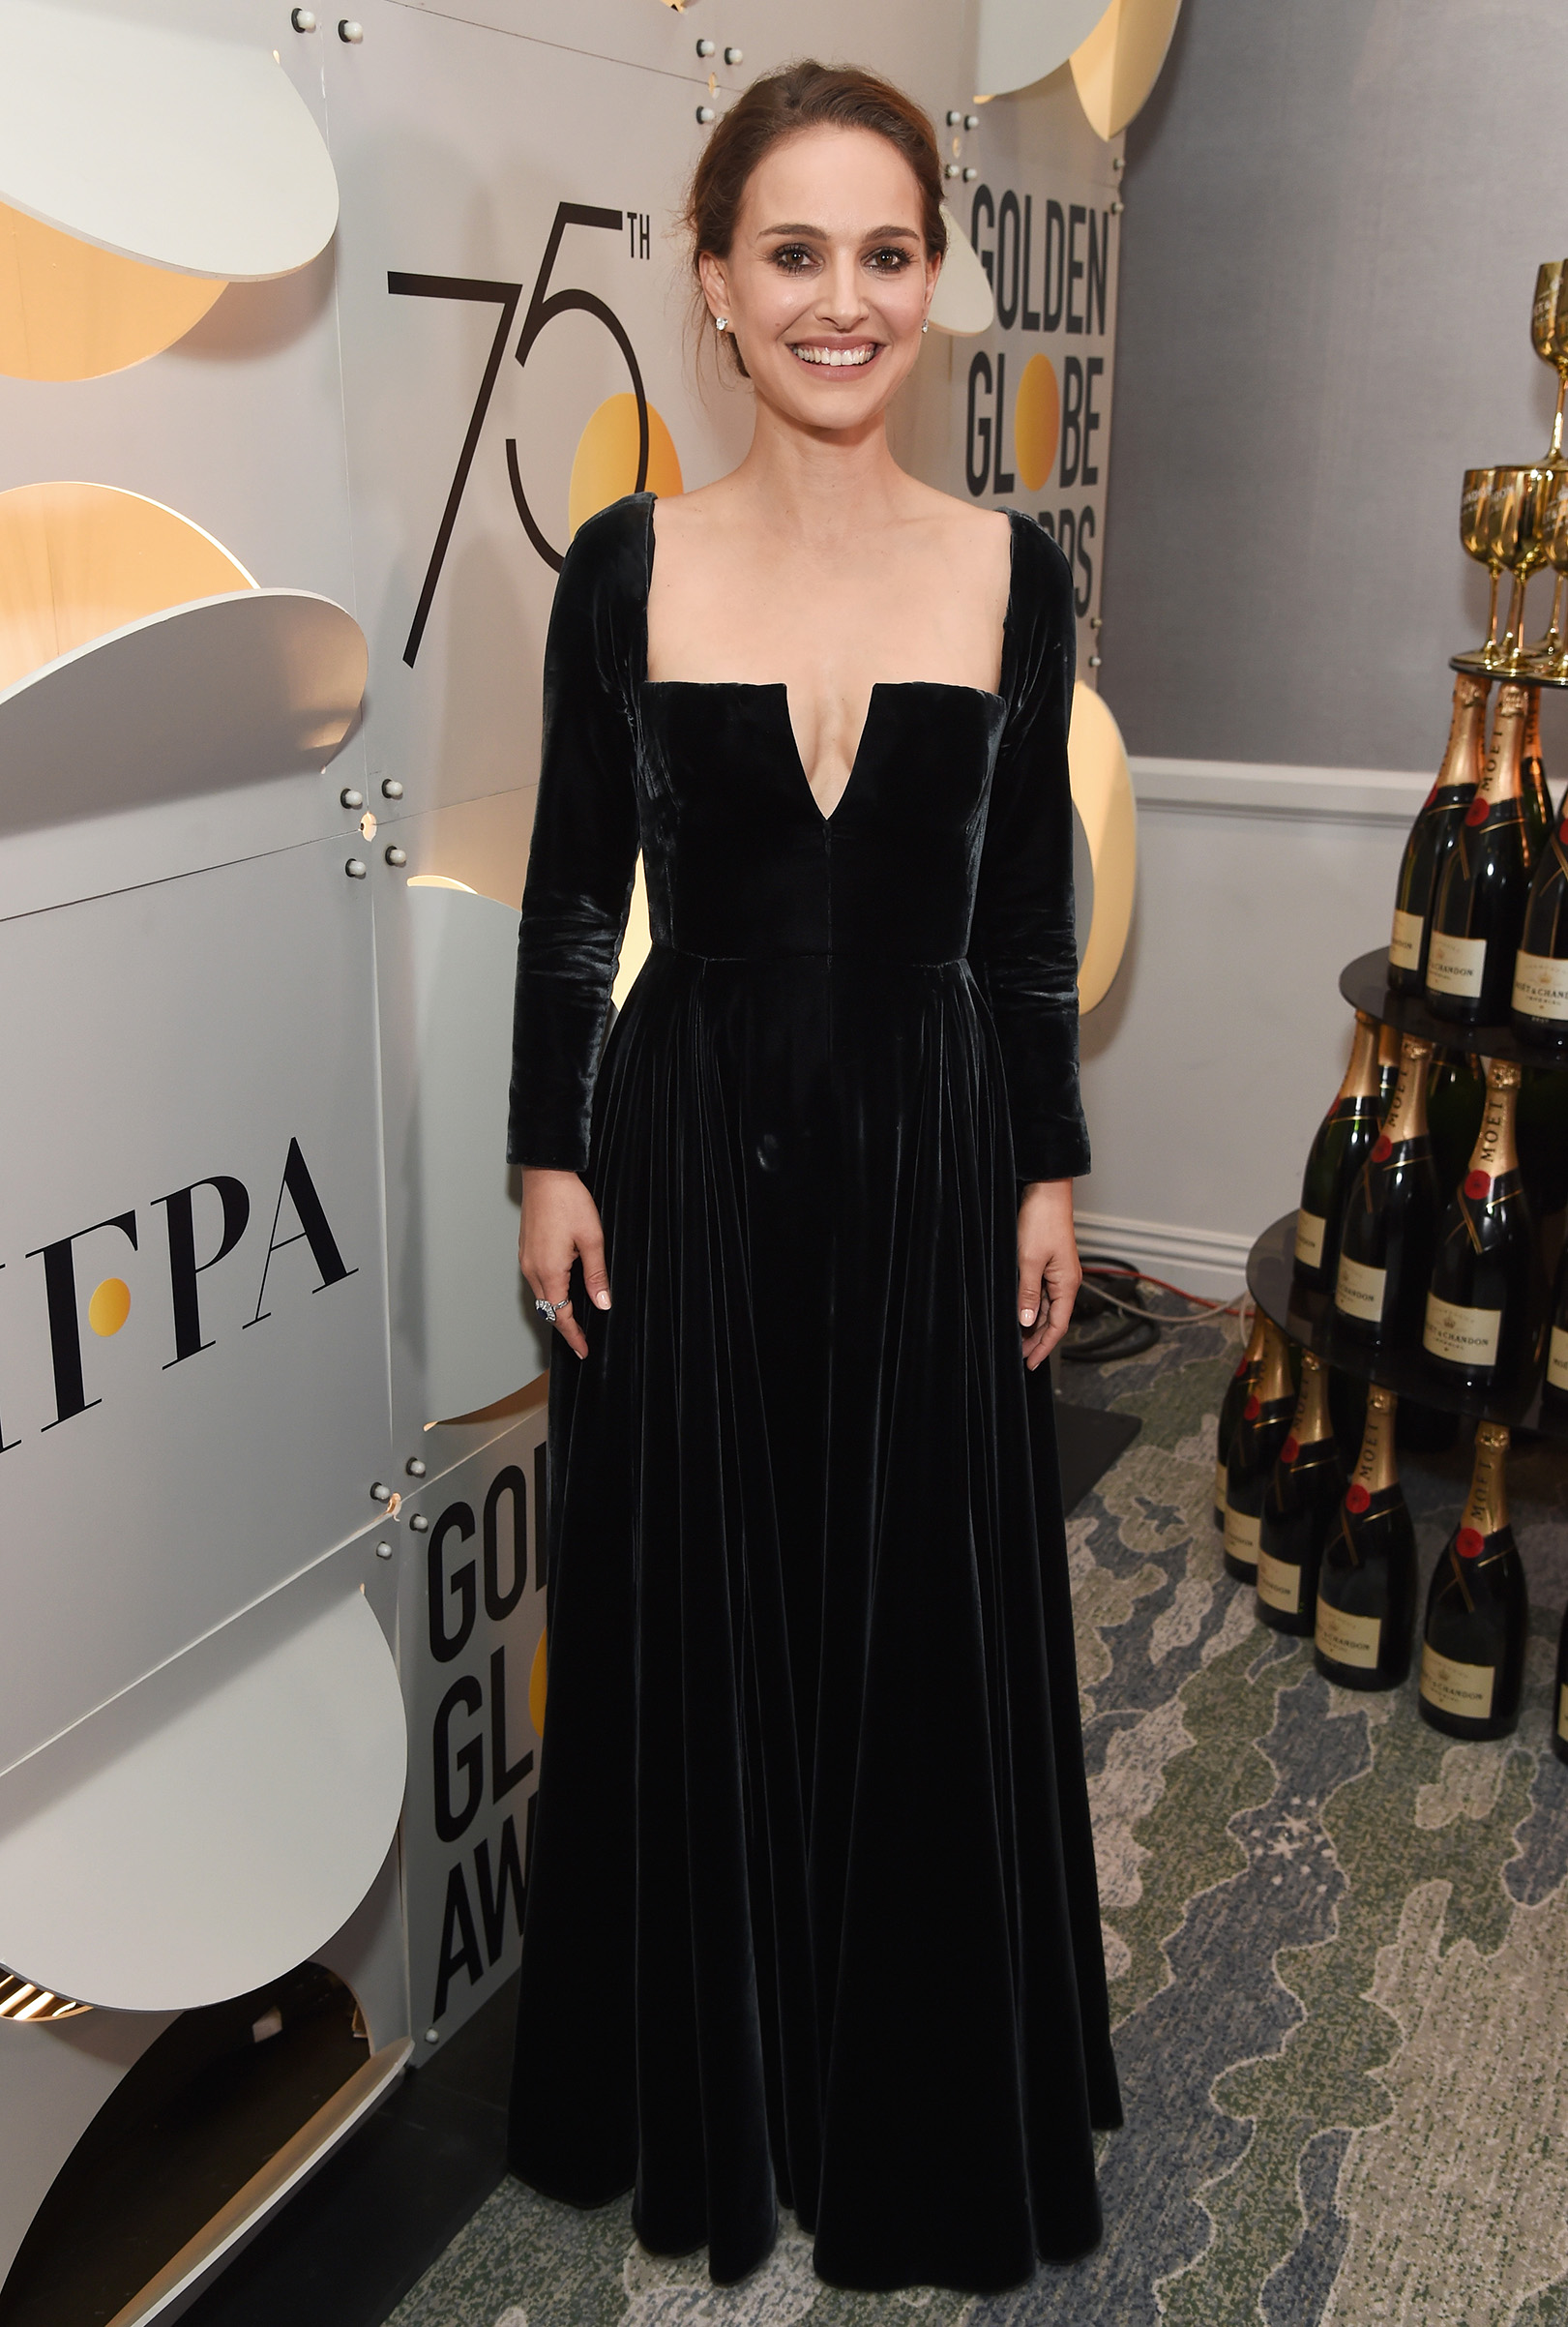 Actor Natalie Portman celebrates The 75th Annual Golden Globe Awards with Moet & Chandon at The Beverly Hilton Hotel on January 7, 2018 in Beverly Hills, California.